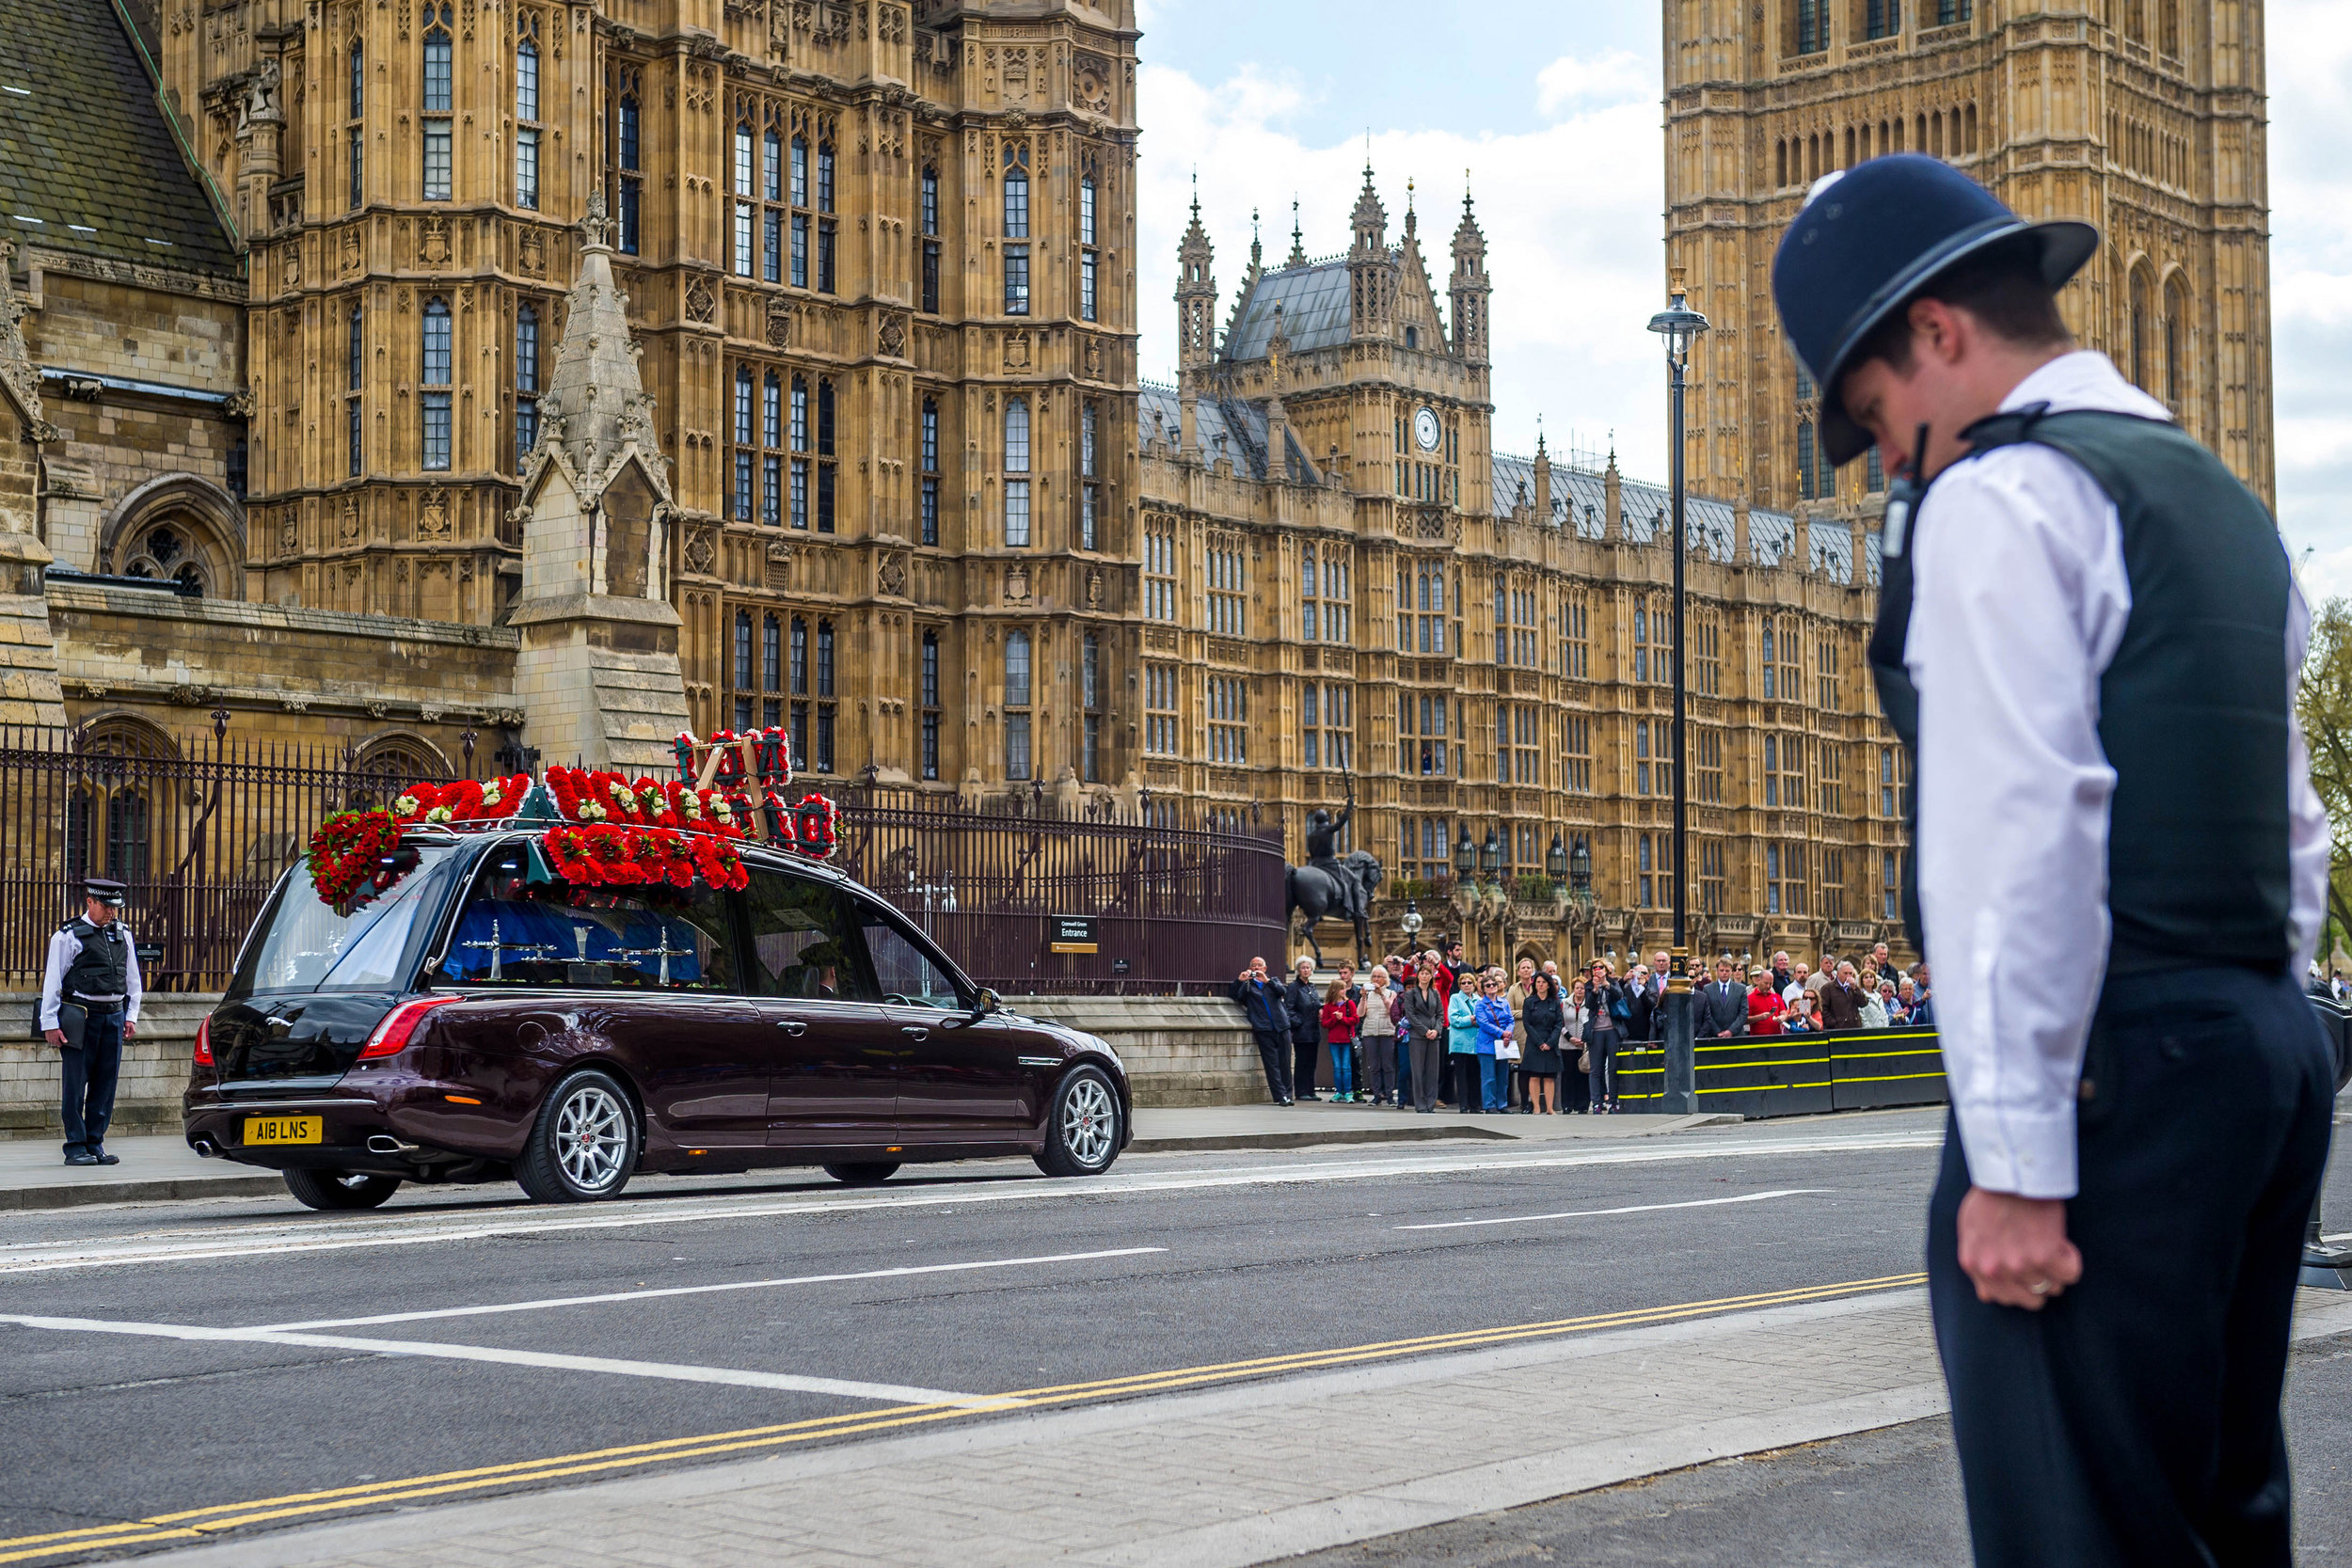 As a mark of respect officers of the Metropolitan Police bow their heads as PC Palmer's funeral cortege is driven out of the Chapel of St Mary Undercroft in the Palace of Westminster. PC Palmer was murdered by Khalid Masood during the terror attack on Westminster Bridge and the Houses of Parliament.Photo by Pete Maclaine  10 April 2017